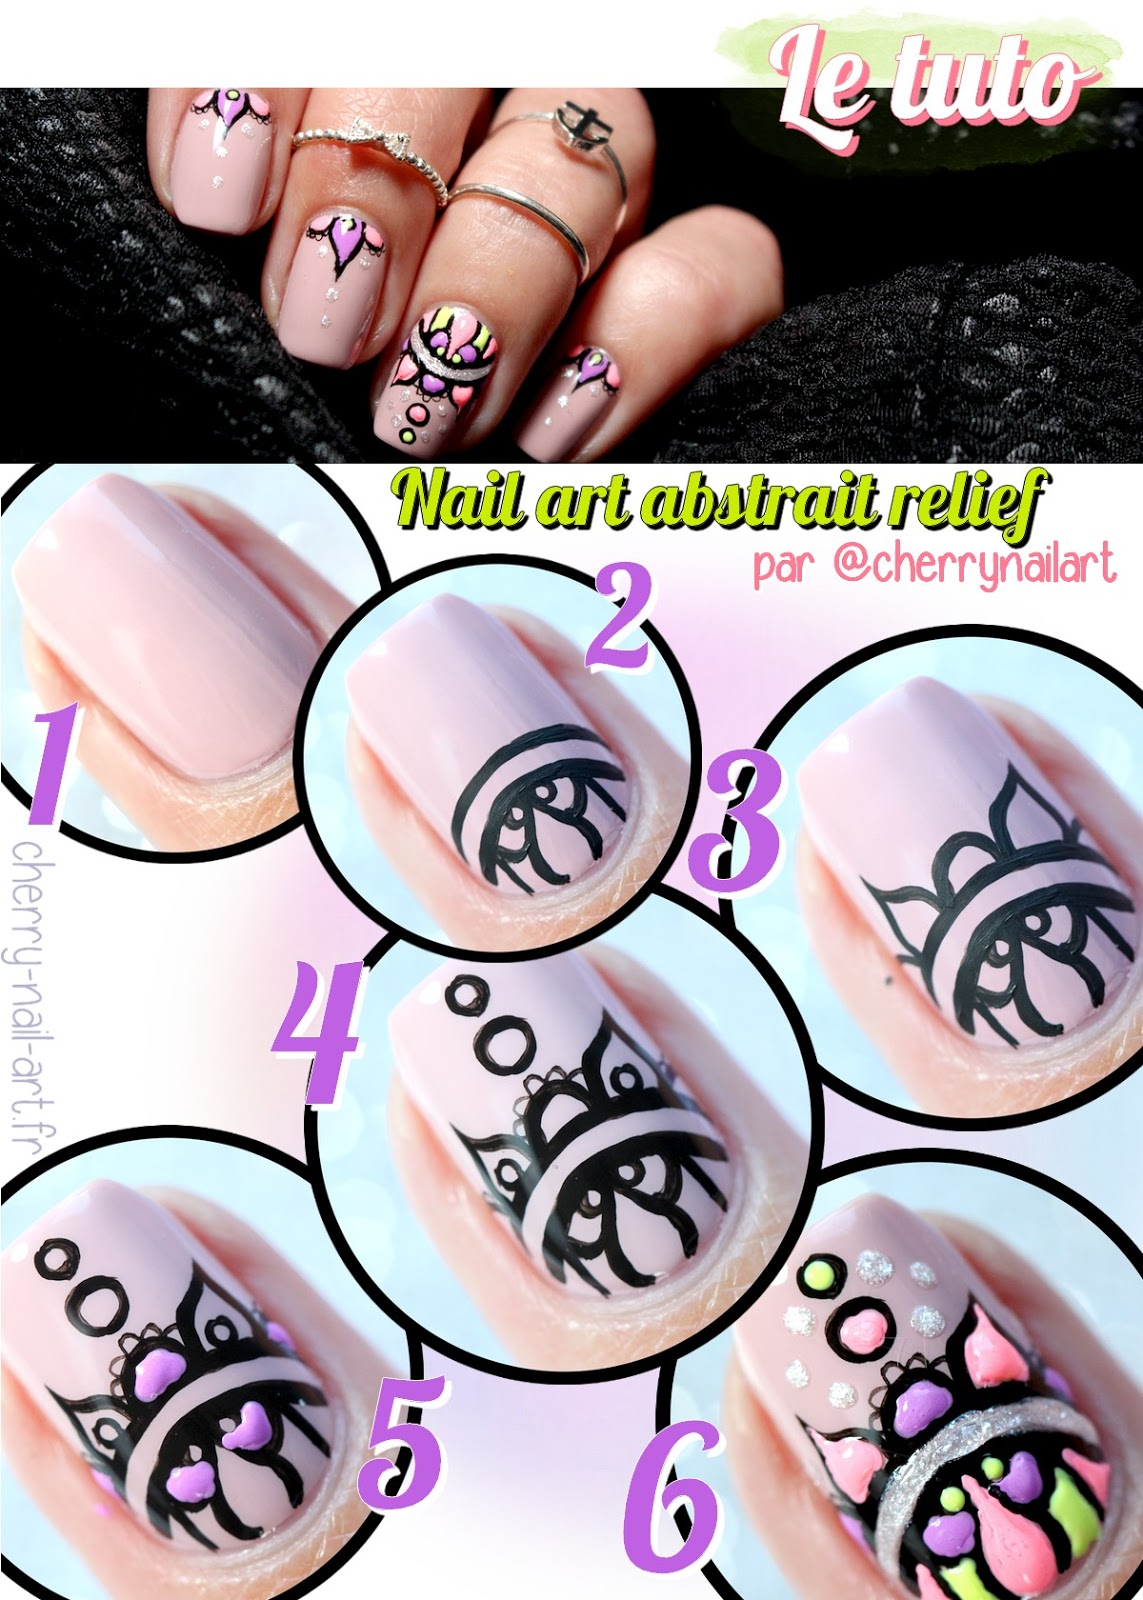 tuto-photo-nail-art-abstrait-relief-vernis-fluo-mandala